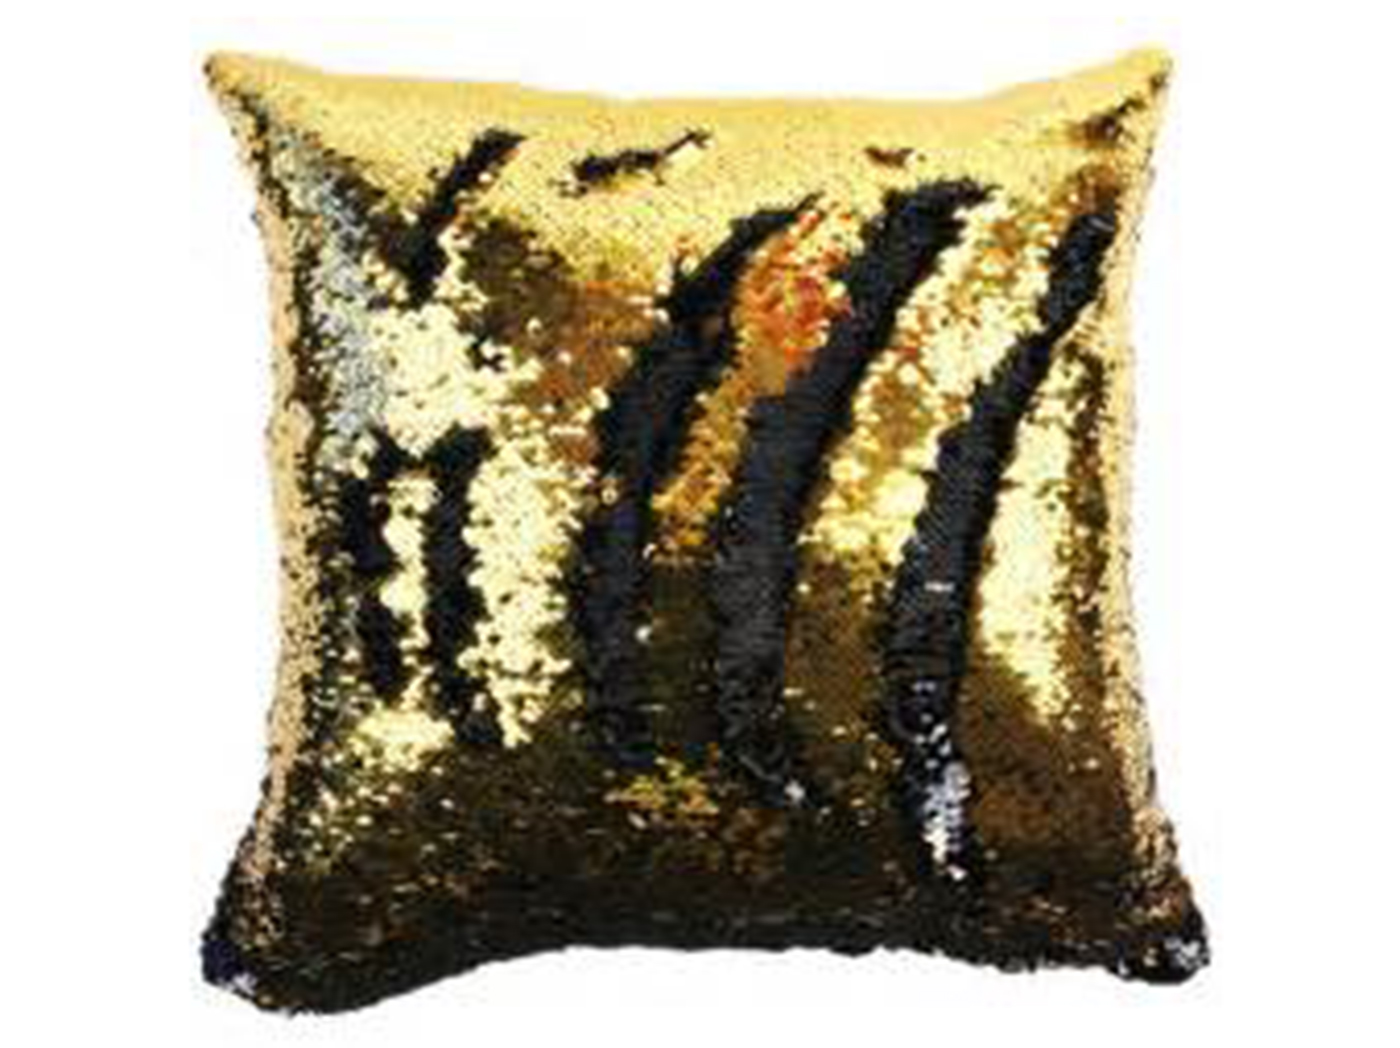 Gold and Black Sequin Mermaid Pillow